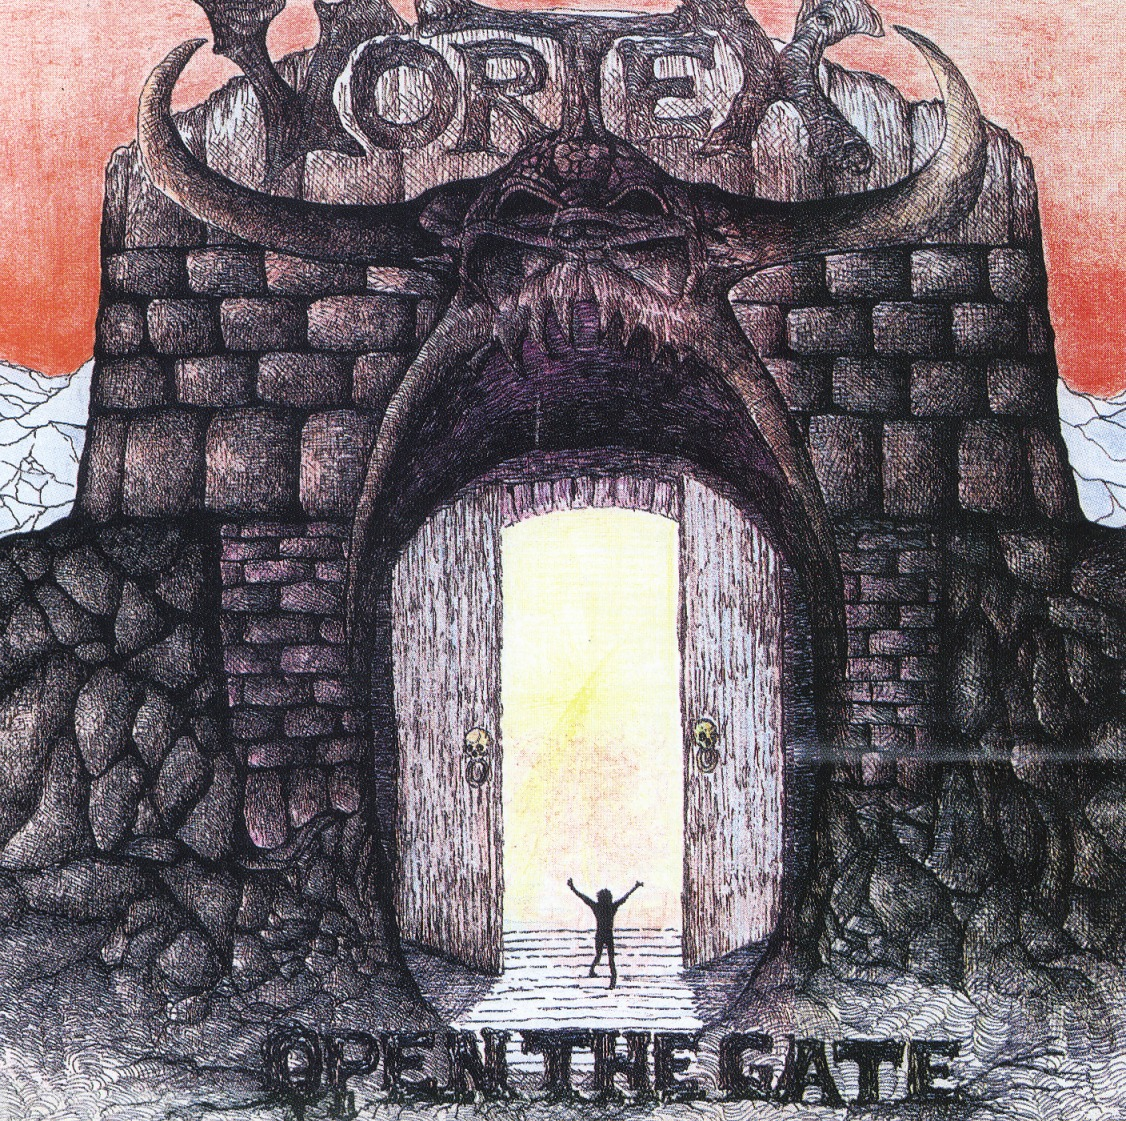 VORTEX(Netherlands) / Metal Bats + Open The Gate